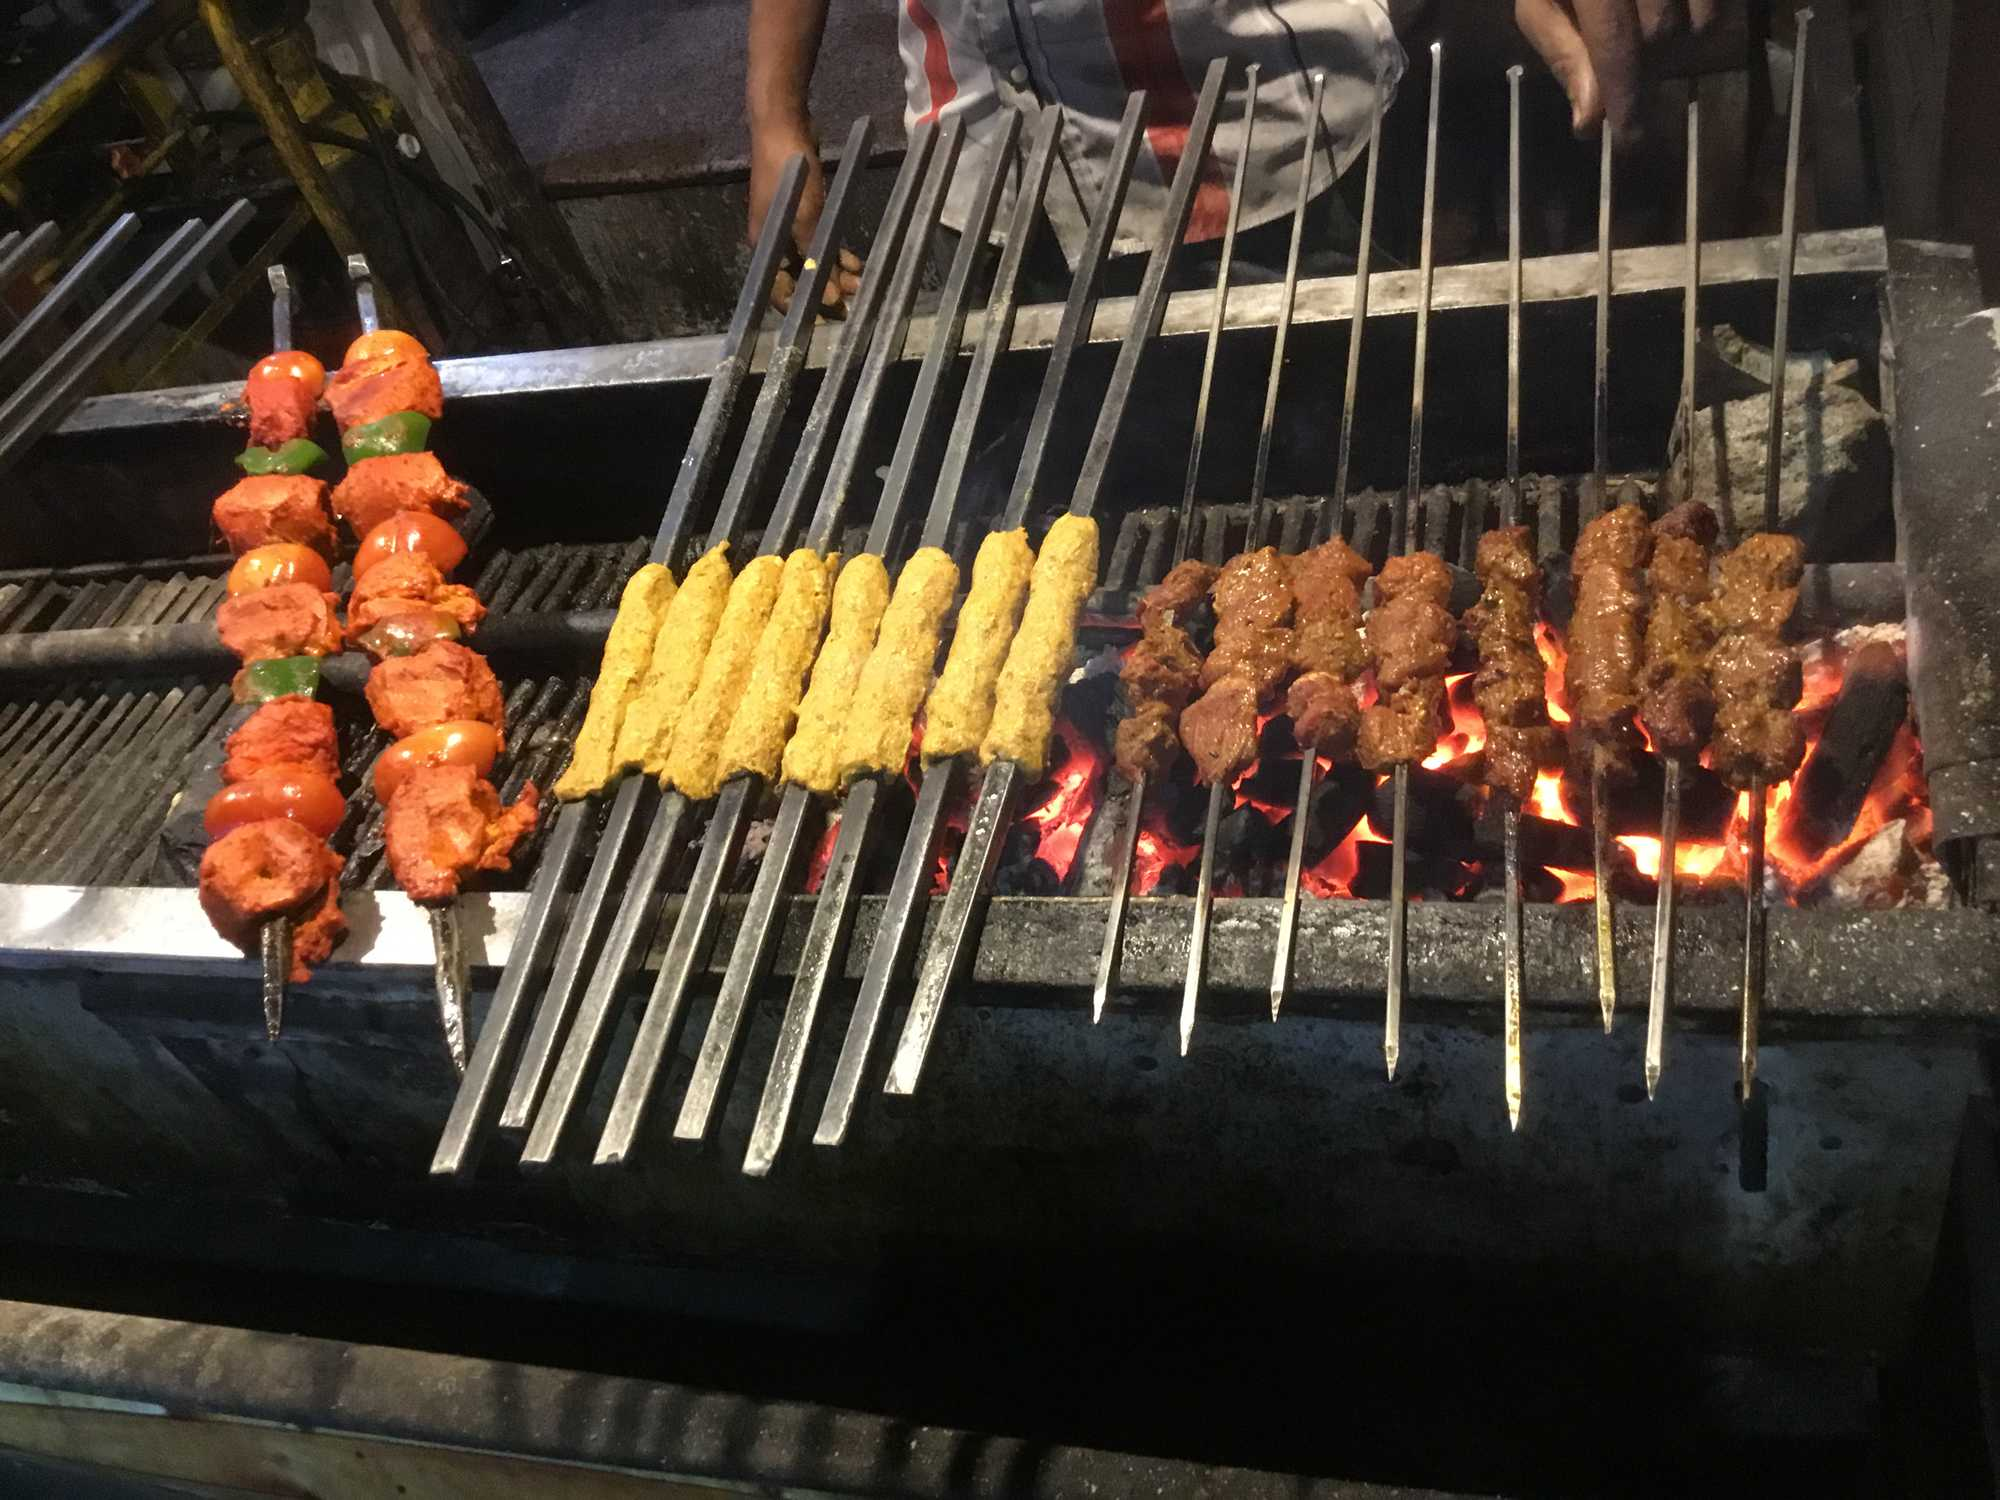 Kebabs- Top Dish To Try in Bhopal